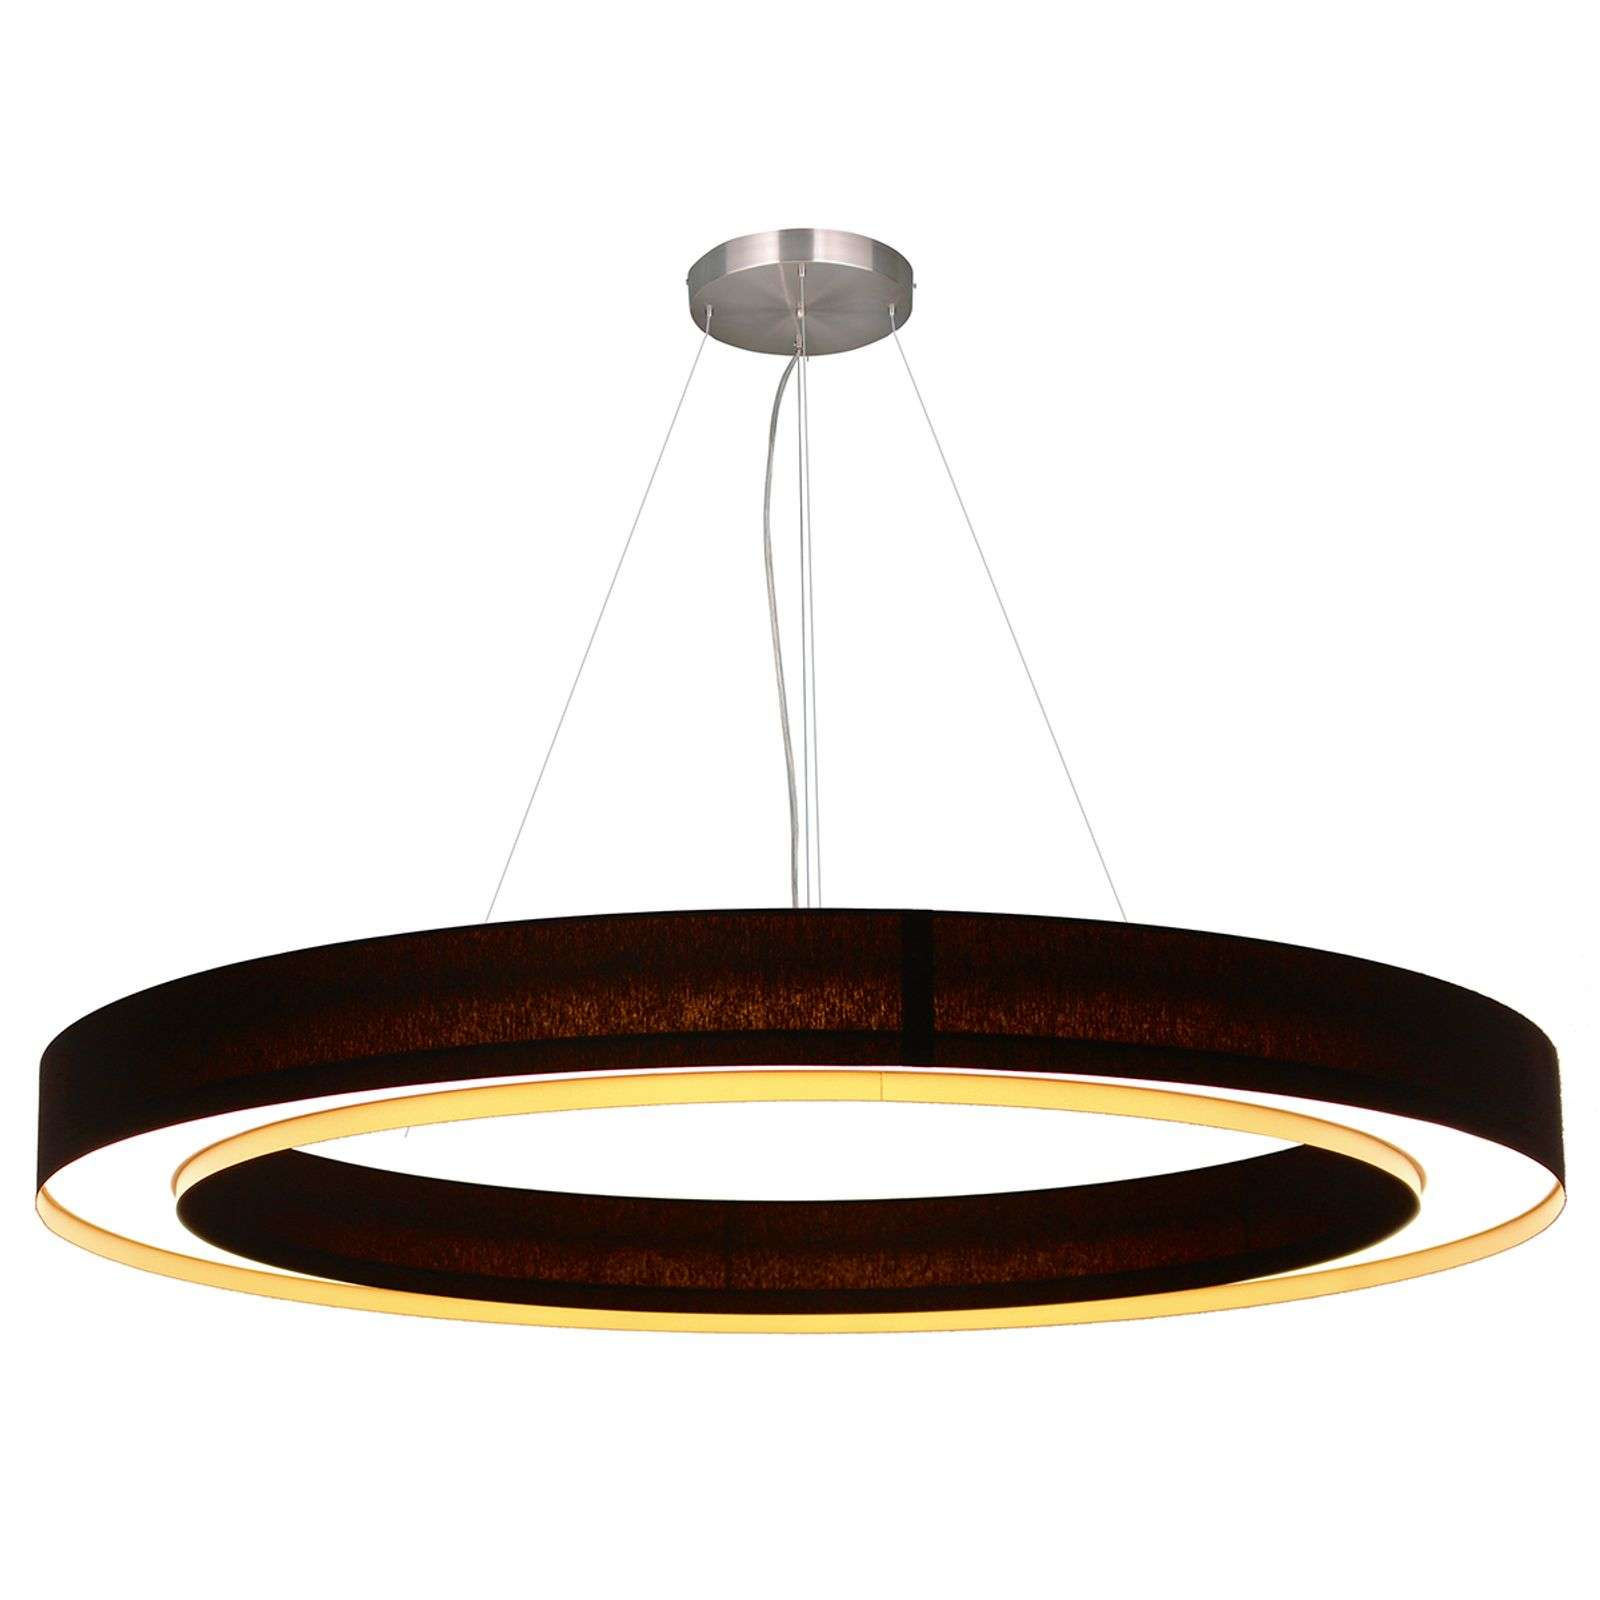 Suspension LED circulaire Cloud, 90 cm